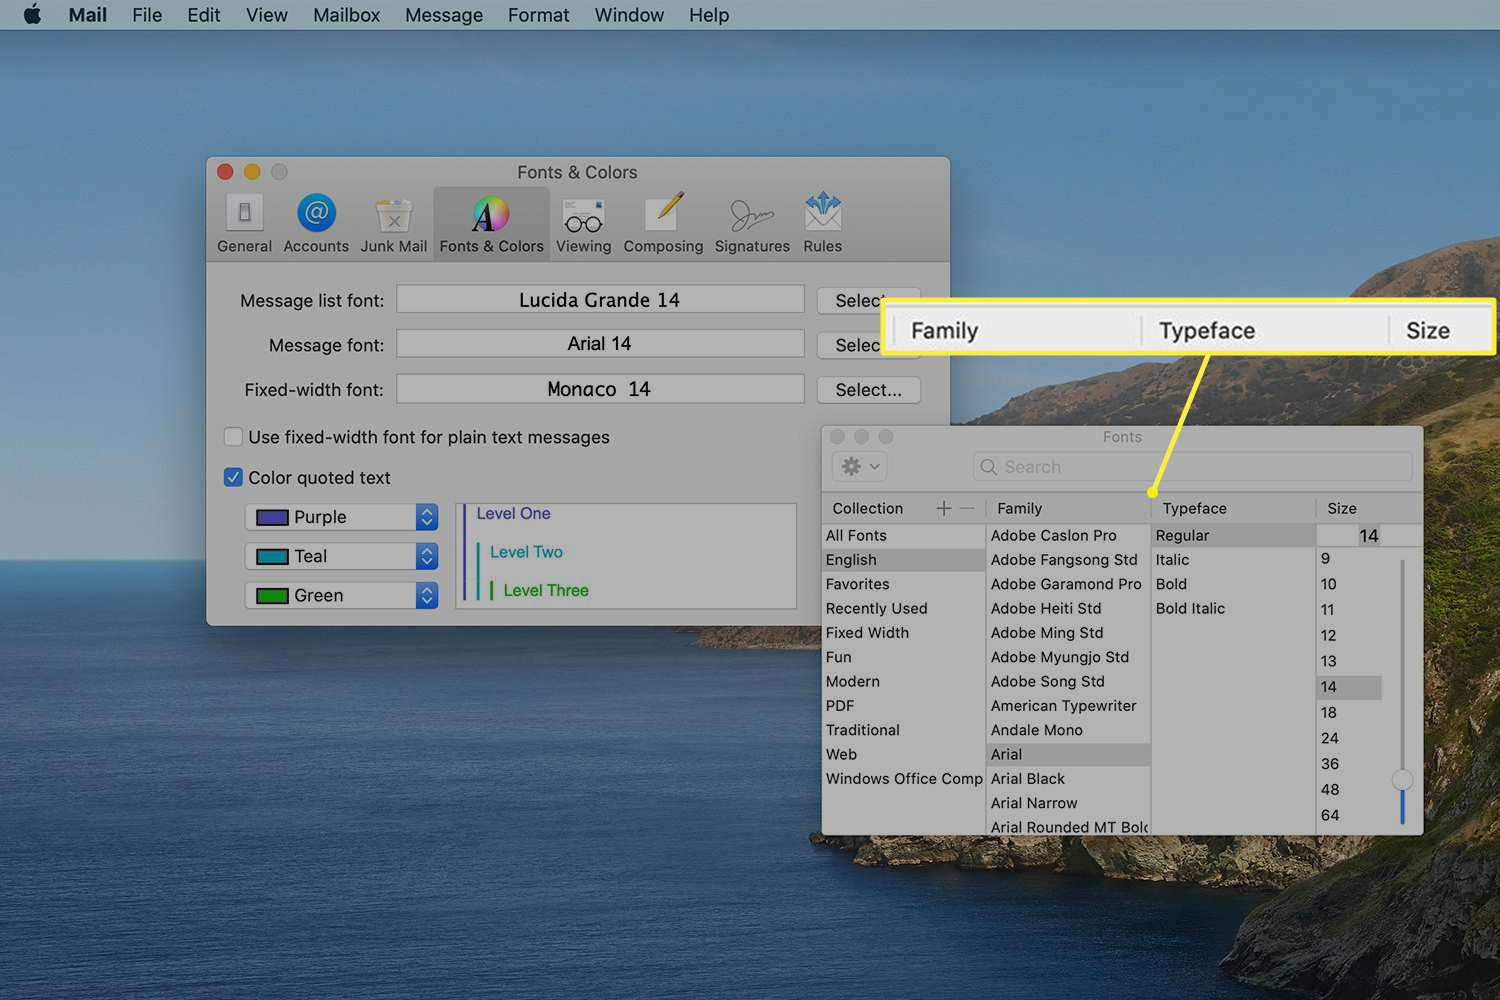 Fonts screen in Mac Mail preferences showing font options